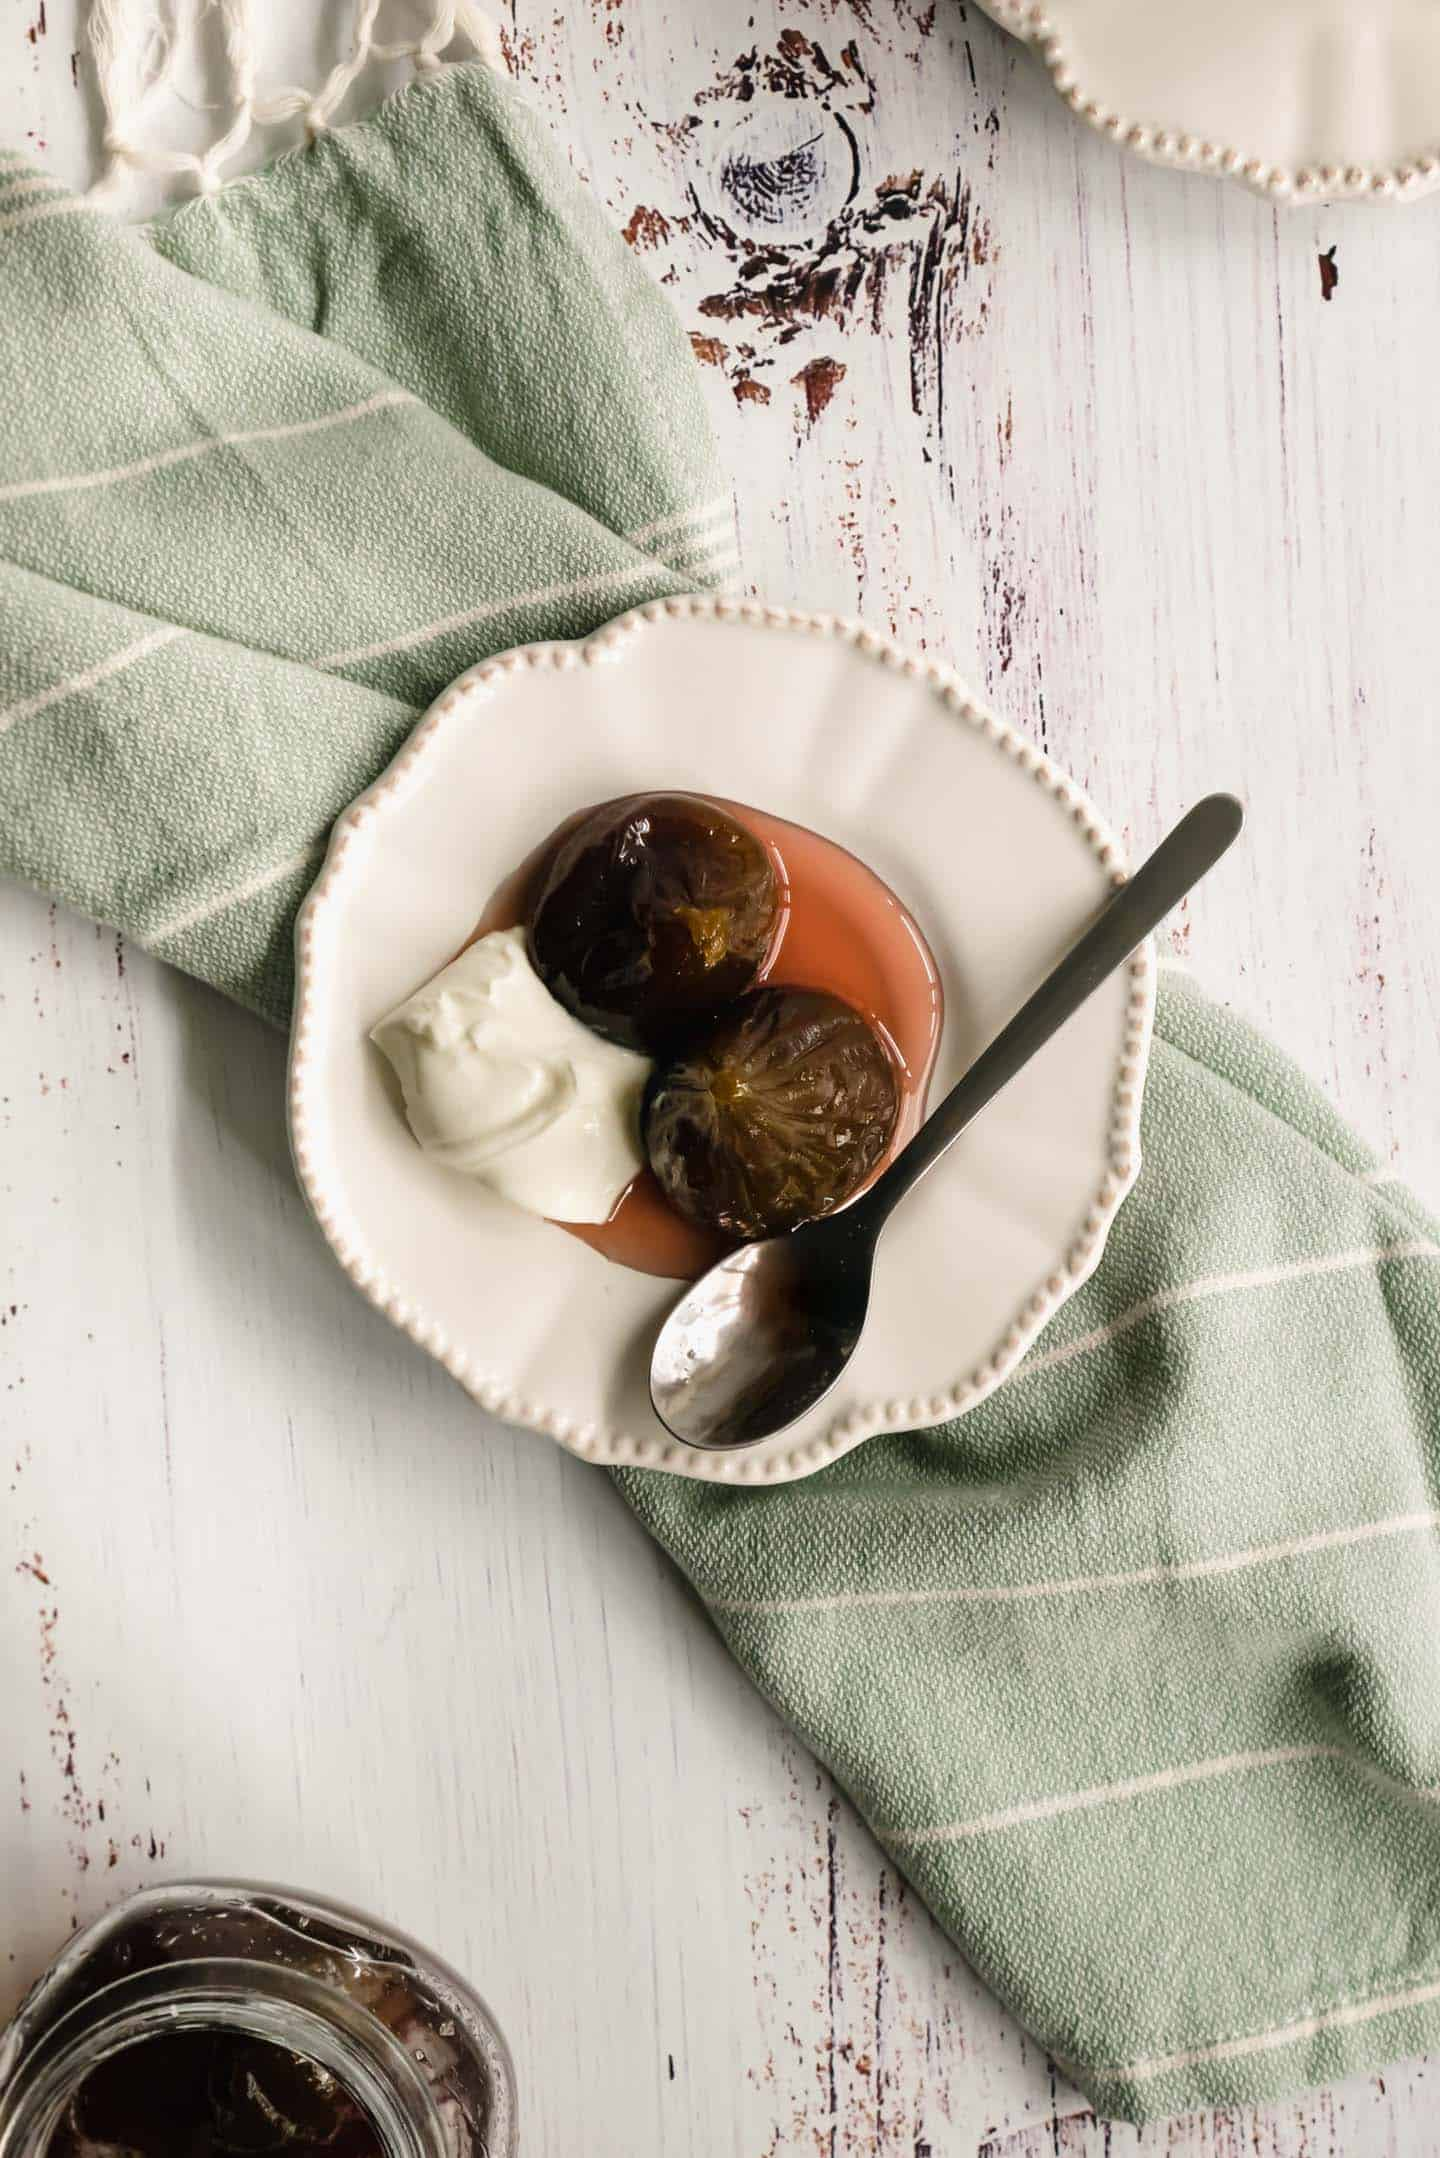 Figs in syrup with whipped cream from above